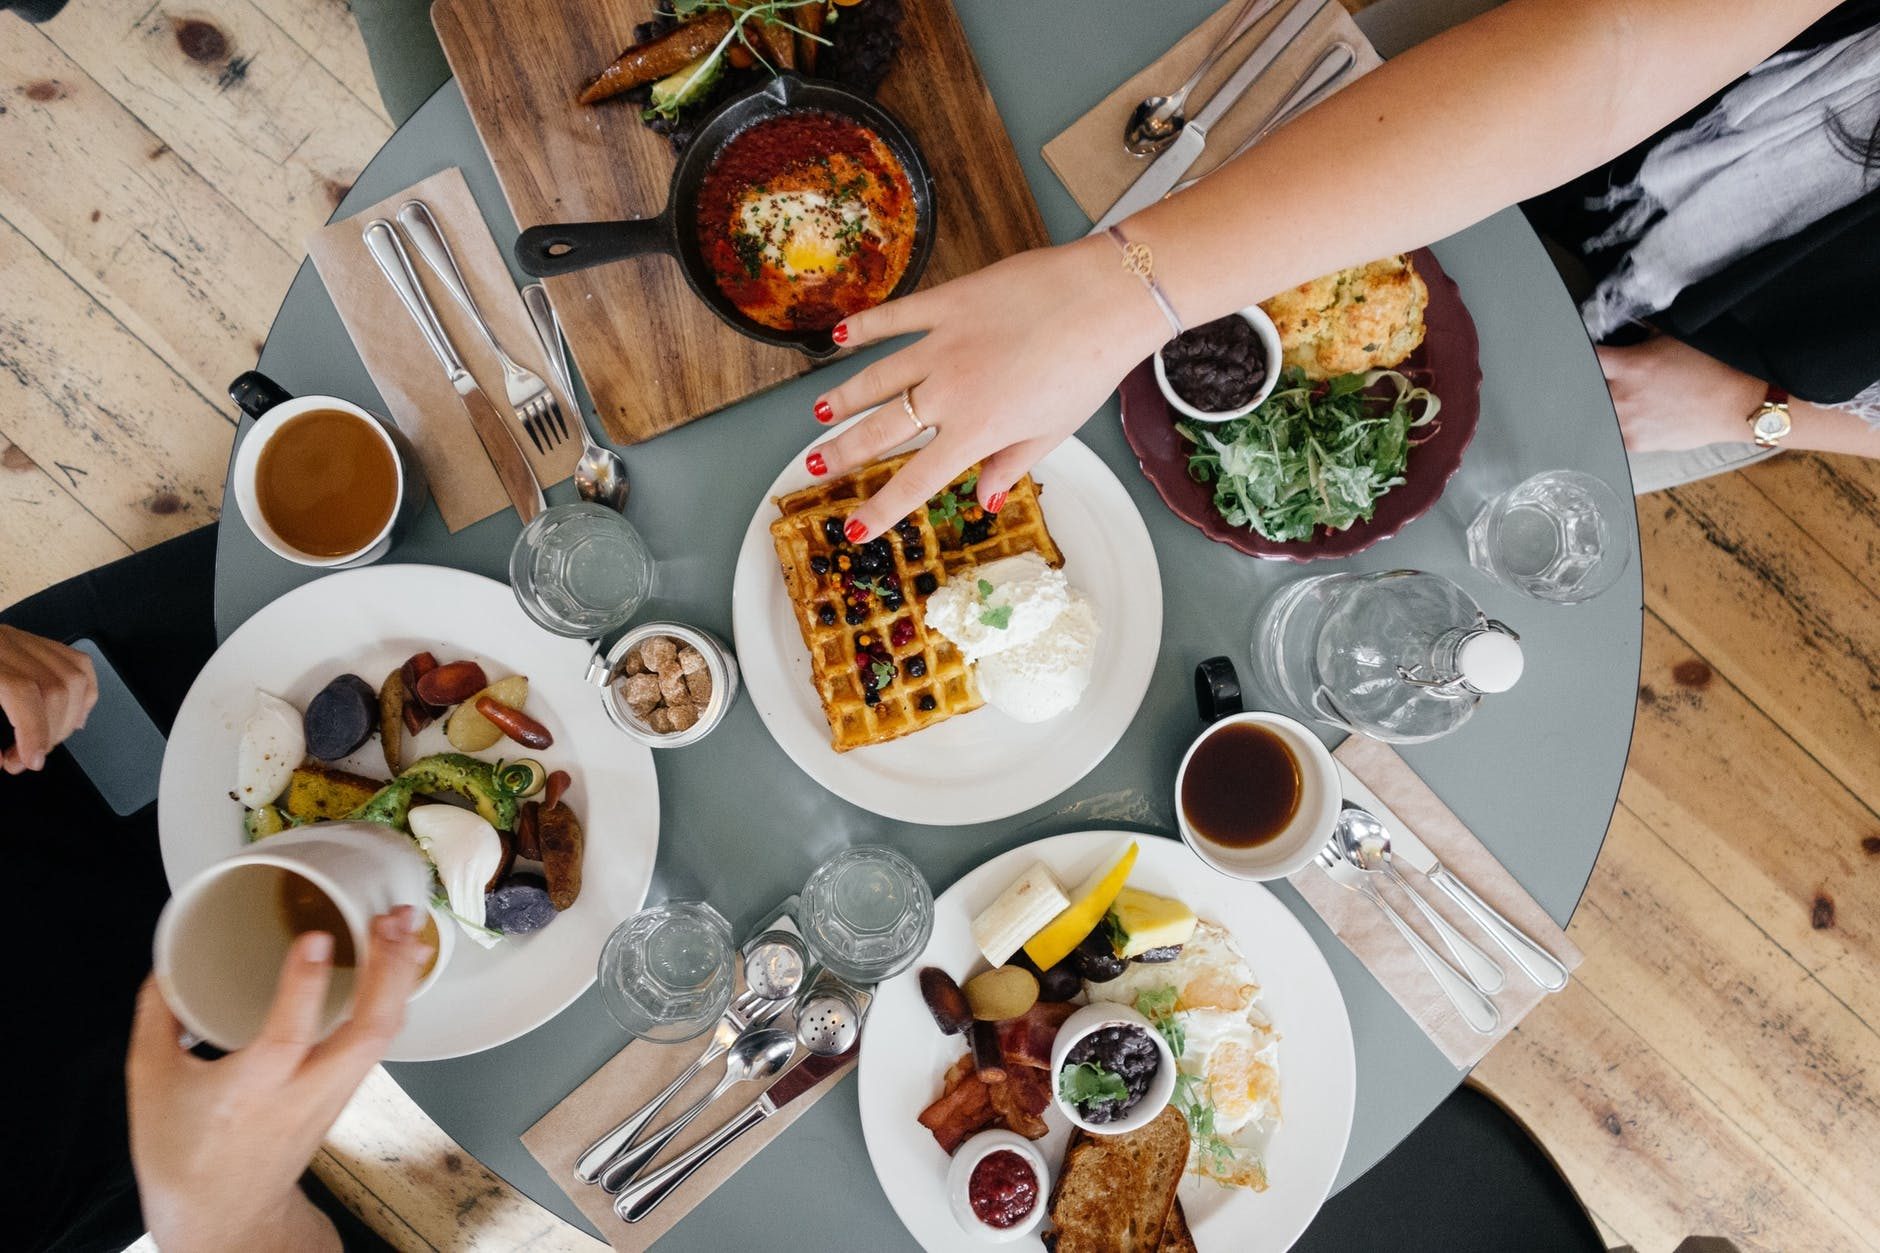 What I Didn't Know About Eating Out